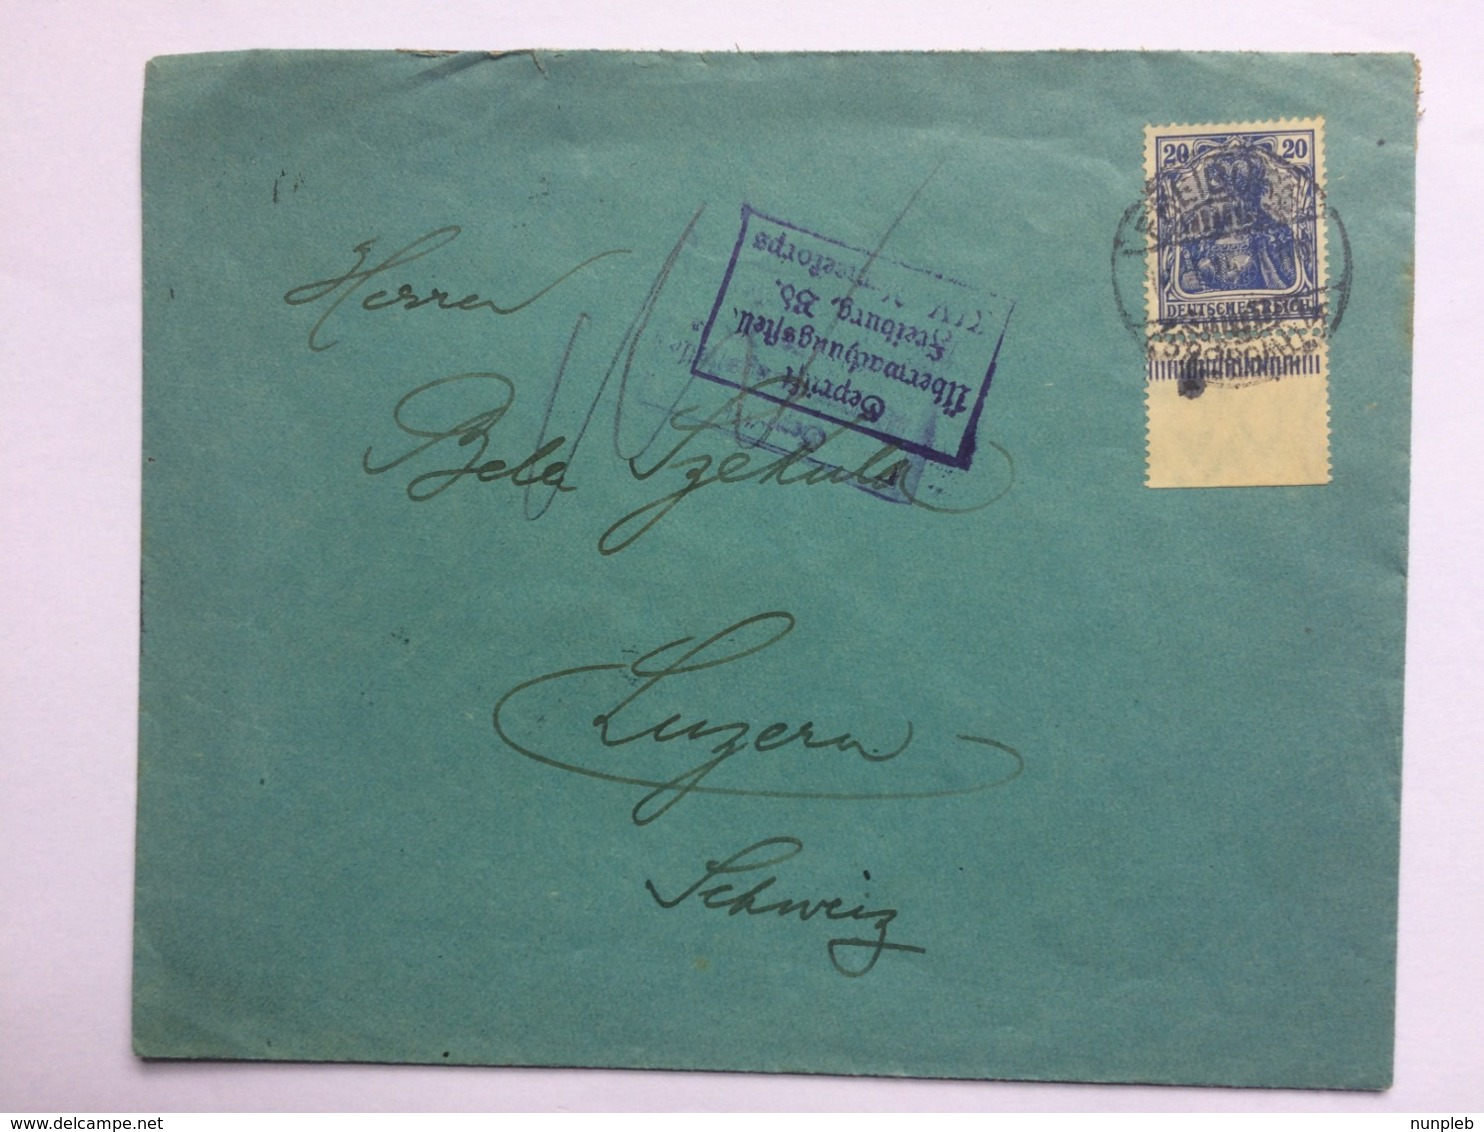 GERMANY 1915 Cover Freiburg To Luzern Switzerland With Gepruft Ubermachungstell Cachet - Allemagne